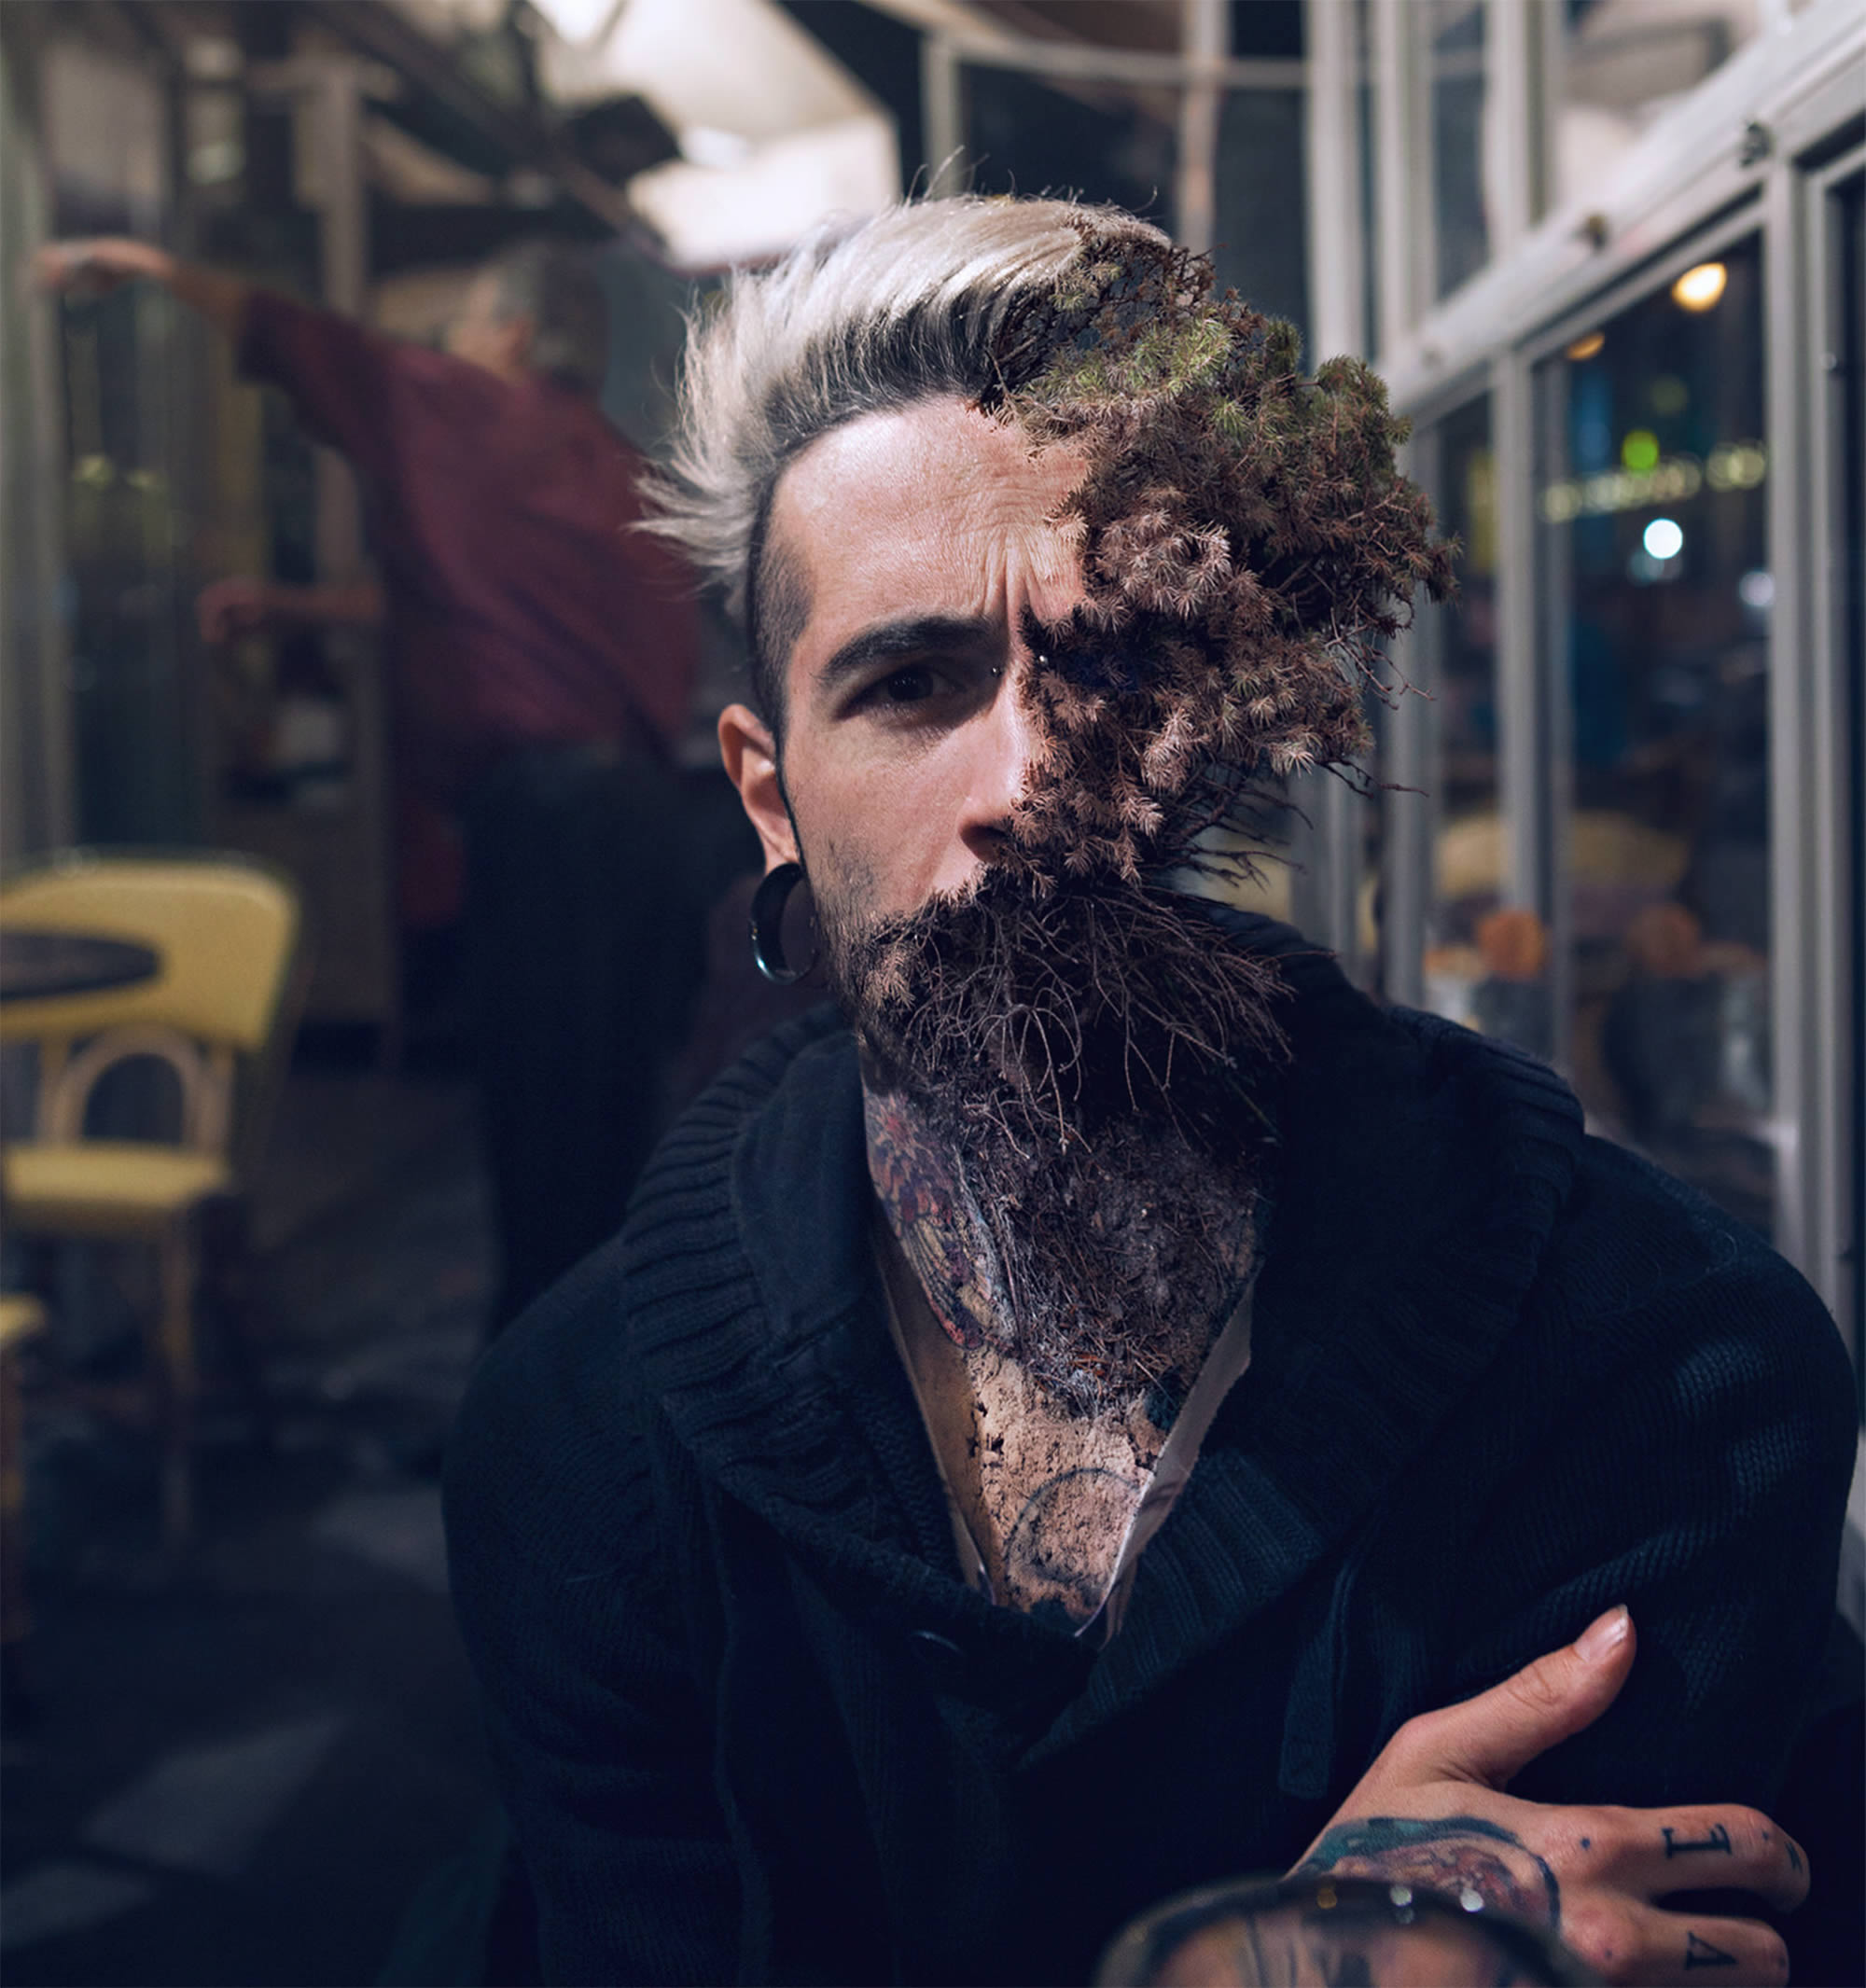 Cal Redback's Strange Hybrid of Humans and Trees